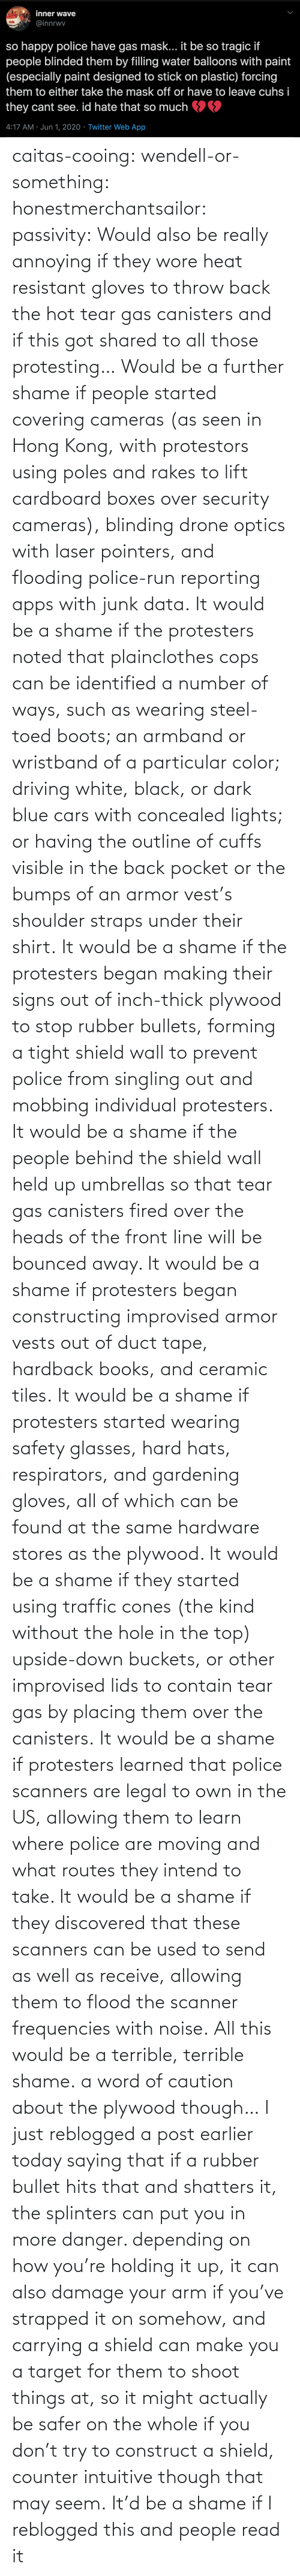 Com Watch: caitas-cooing:  wendell-or-something: honestmerchantsailor:  passivity: Would also be really annoying if they wore heat resistant gloves to throw back the hot tear gas canisters and if this got shared to all those protesting… Would be a further shame if people started covering cameras (as seen in Hong Kong, with protestors using poles and rakes to lift cardboard boxes over security cameras), blinding drone optics with laser pointers, and flooding police-run reporting apps with junk data. It would be a shame if the protesters noted that plainclothes cops can be identified a number of ways, such as wearing steel-toed boots; an armband or wristband of a particular color; driving white, black, or dark blue cars with concealed lights; or having the outline of cuffs visible in the back pocket or the bumps of an armor vest's shoulder straps under their shirt. It would be a shame if the protesters began making their signs out of inch-thick plywood to stop rubber bullets, forming a tight shield wall to prevent police from singling out and mobbing individual protesters. It would be a shame if the people behind the shield wall held up umbrellas so that tear gas canisters fired over the heads of the front line will be bounced away. It would be a shame if protesters began constructing improvised armor vests out of duct tape, hardback books, and ceramic tiles. It would be a shame if protesters started wearing safety glasses, hard hats, respirators, and gardening gloves, all of which can be found at the same hardware stores as the plywood. It would be a shame if they started using traffic cones (the kind without the hole in the top) upside-down buckets, or other improvised lids to contain tear gas by placing them over the canisters. It would be a shame if protesters learned that police scanners are legal to own in the US, allowing them to learn where police are moving and what routes they intend to take. It would be a shame if they discovered that these scanners can be used to send as well as receive, allowing them to flood the scanner frequencies with noise. All this would be a terrible, terrible shame.    a word of caution about the plywood though… I just reblogged a post earlier today saying that if a rubber bullet hits that and shatters it, the splinters can put you in more danger. depending on how you're holding it up, it can also damage your arm if you've strapped it on somehow, and carrying a shield can make you a target for them to shoot things at, so it might actually be safer on the whole if you don't try to construct a shield, counter intuitive though that may seem.    It'd be a shame if I reblogged this and people read it